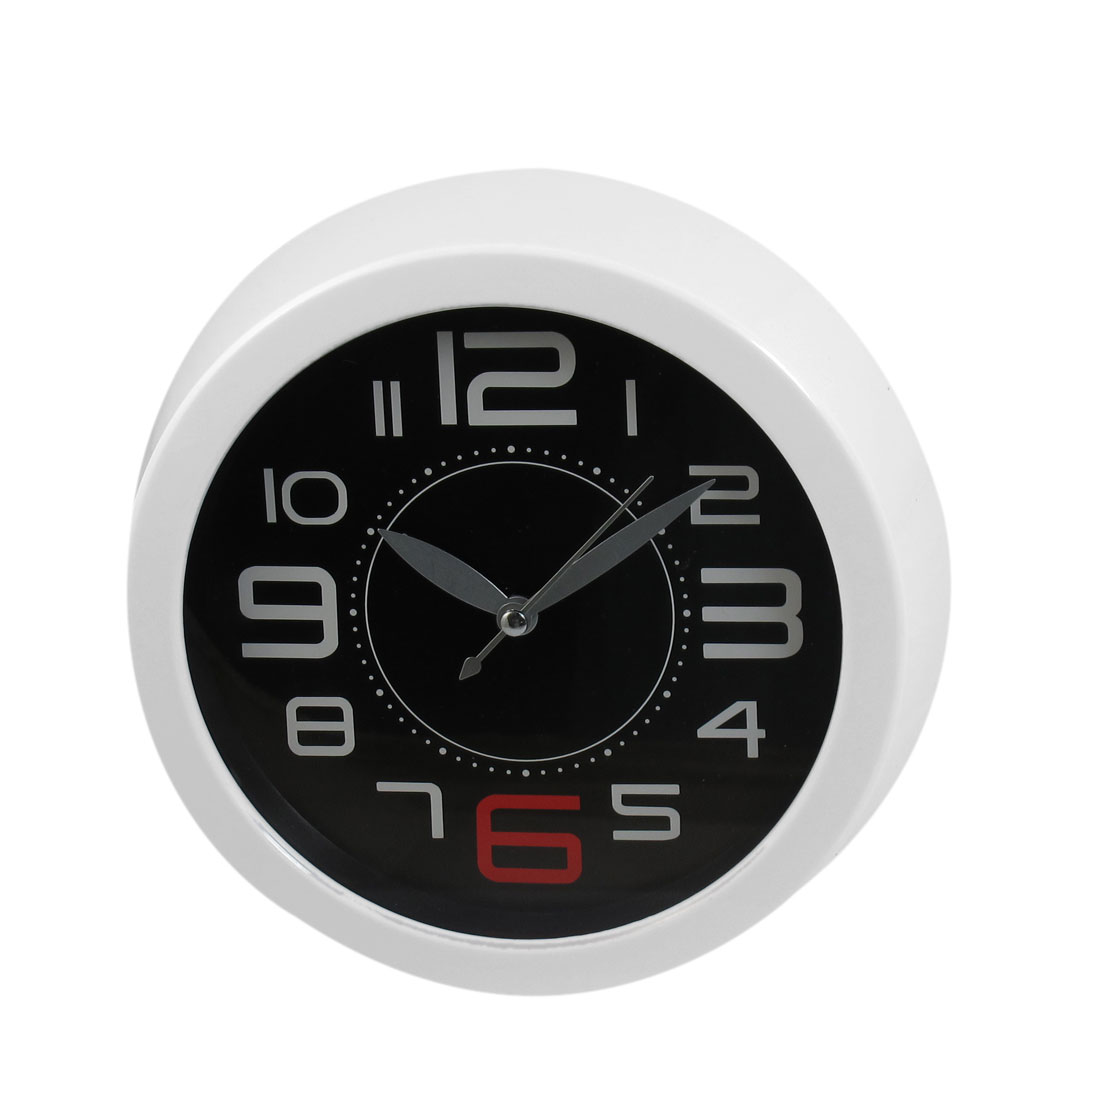 Round Dial Plastic Wall Clock Ornament White for Bedroom